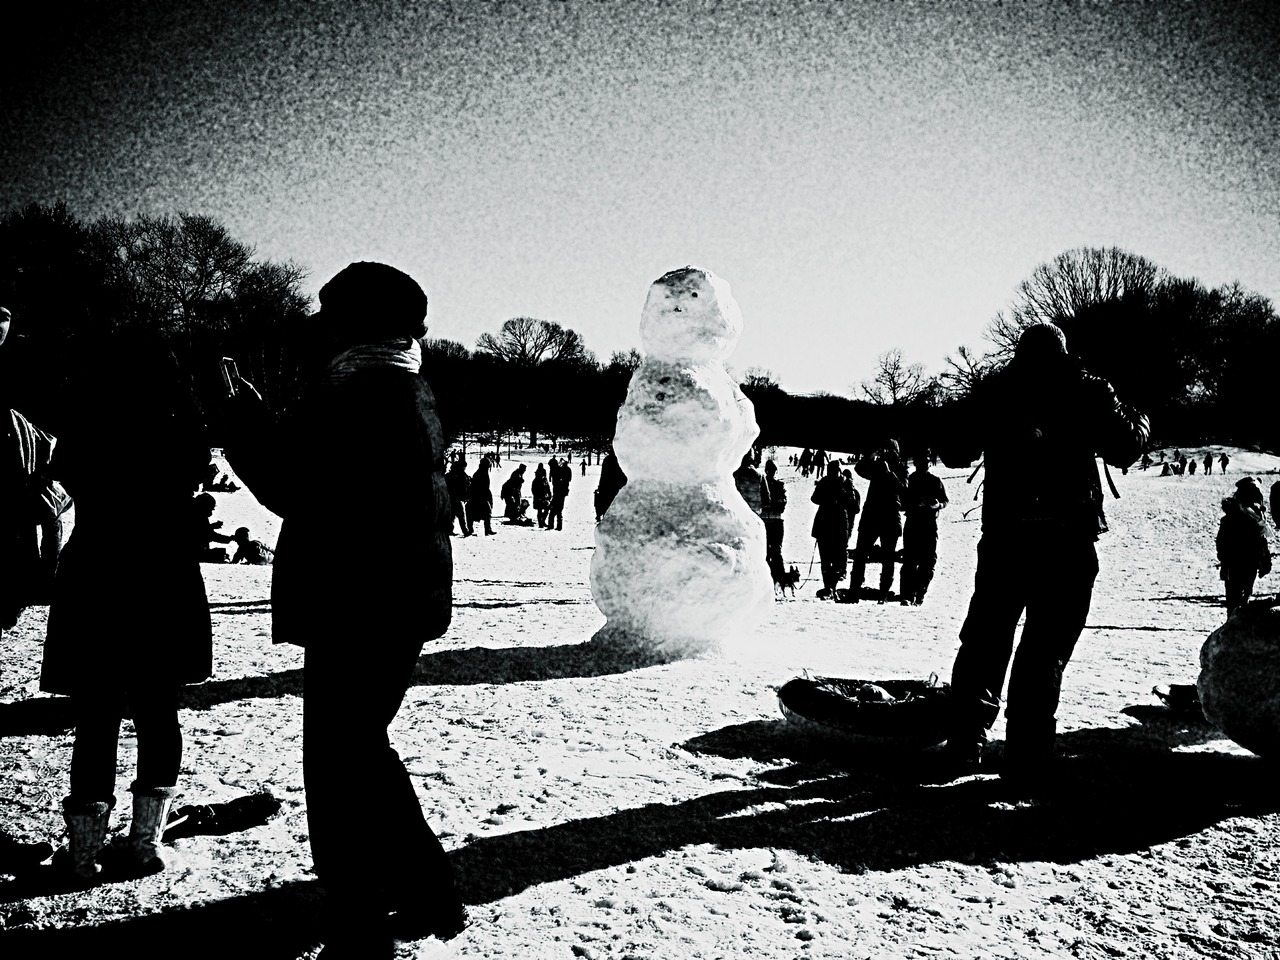 Who Needs Their Fix #peppersearching #pepper #photos #snow2013 #snowman #people #carrot #prospectpark